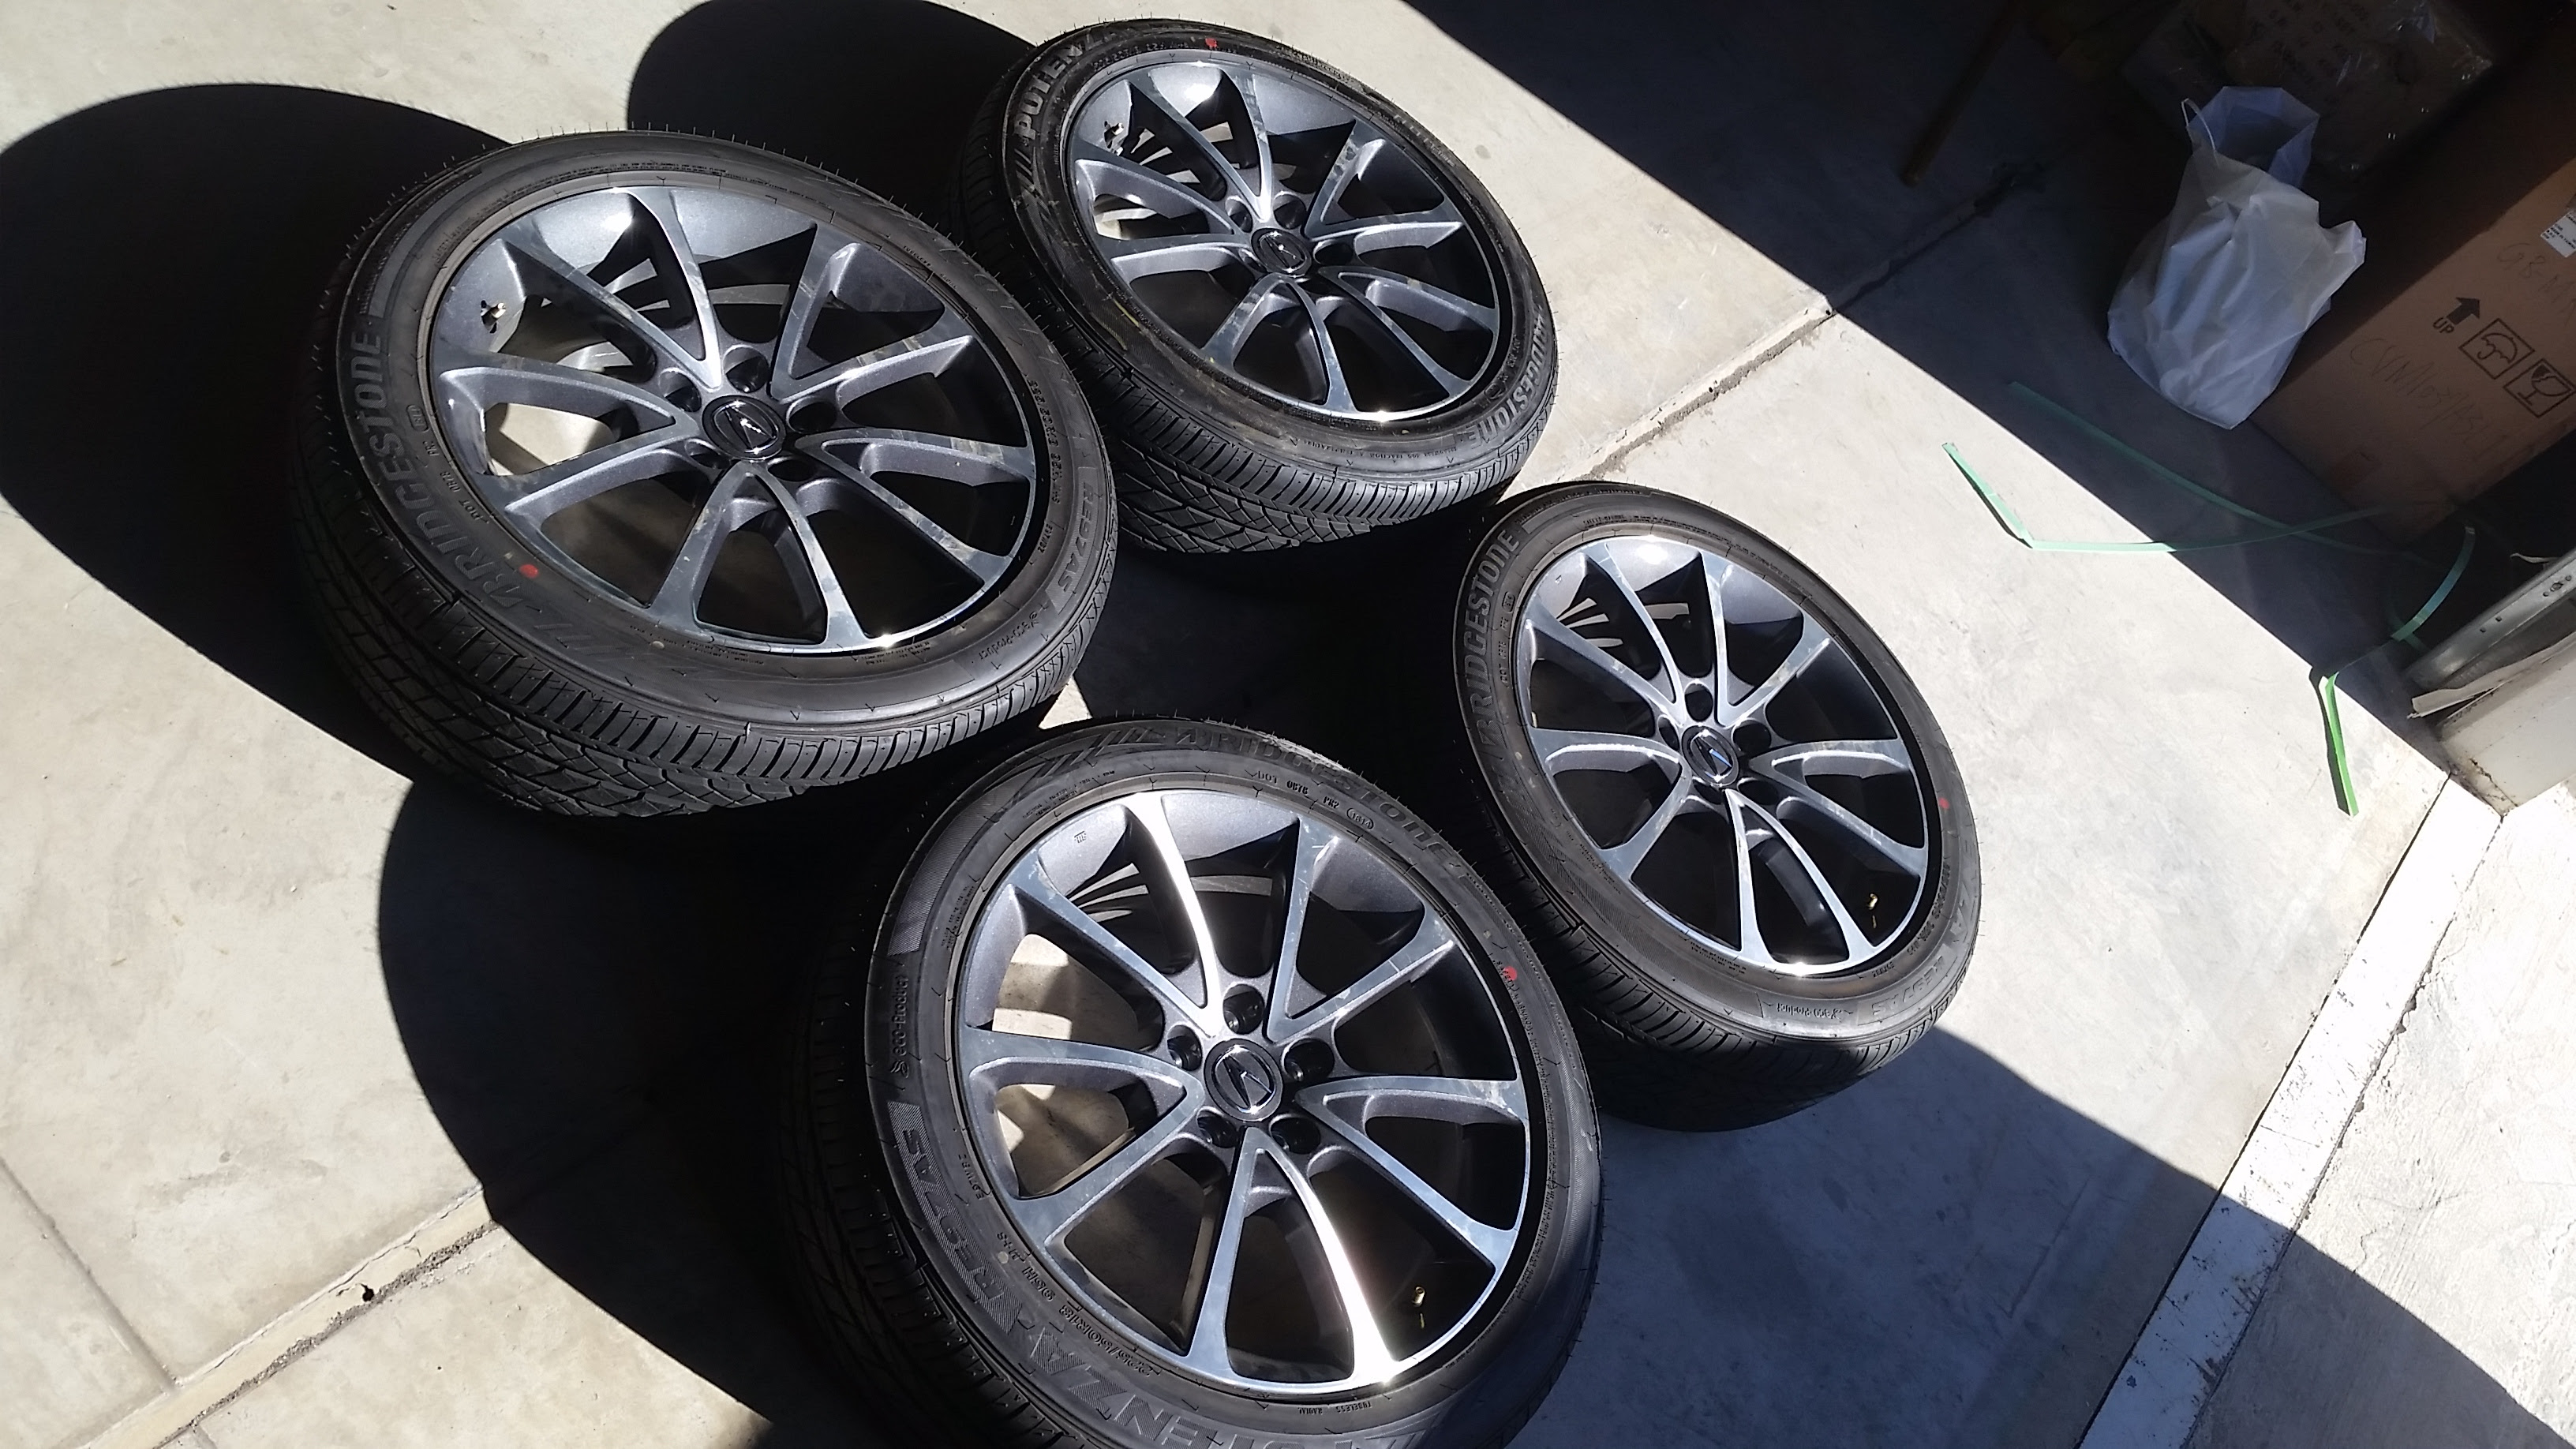 Sold 4x Acura Tlx 18 Enkei Wheels And Bridgestone Potenza Tires Acurazine Acura Enthusiast